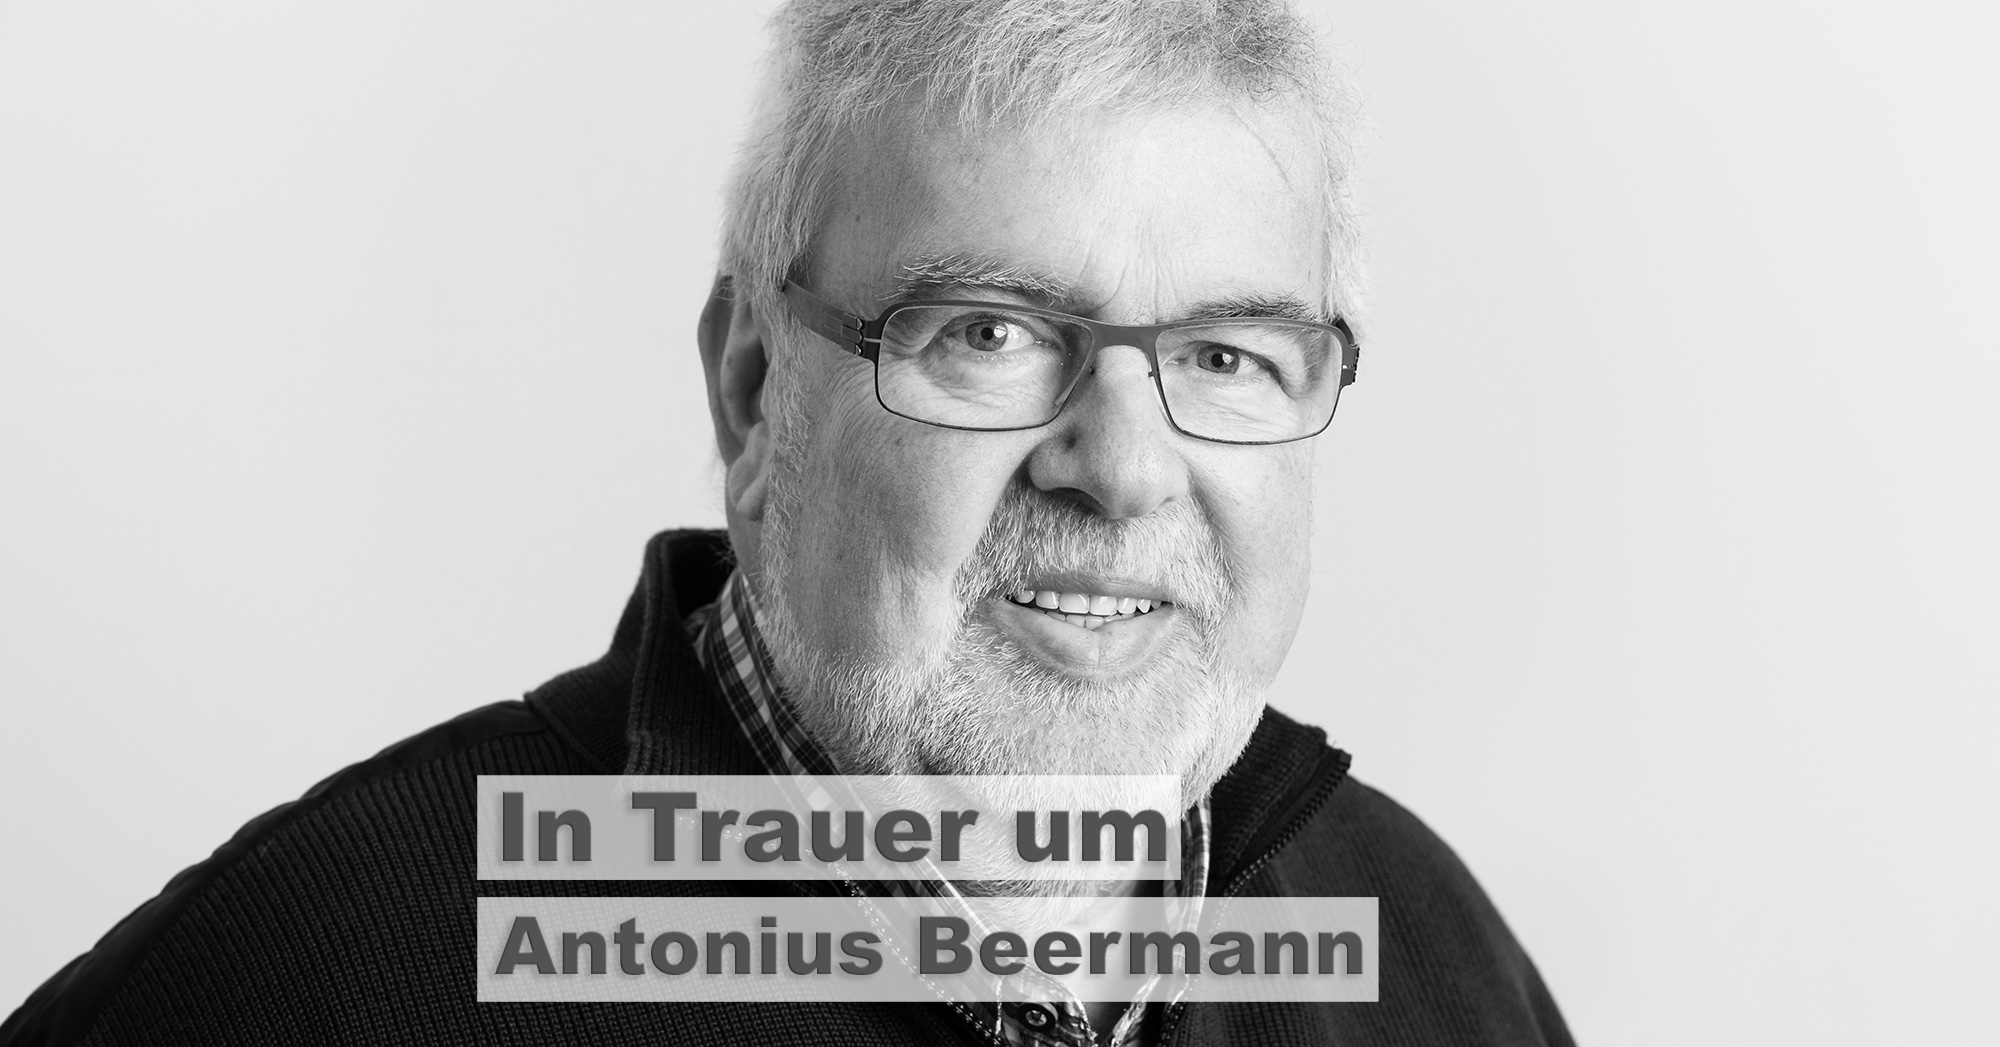 In Trauer um Antonius Beermann